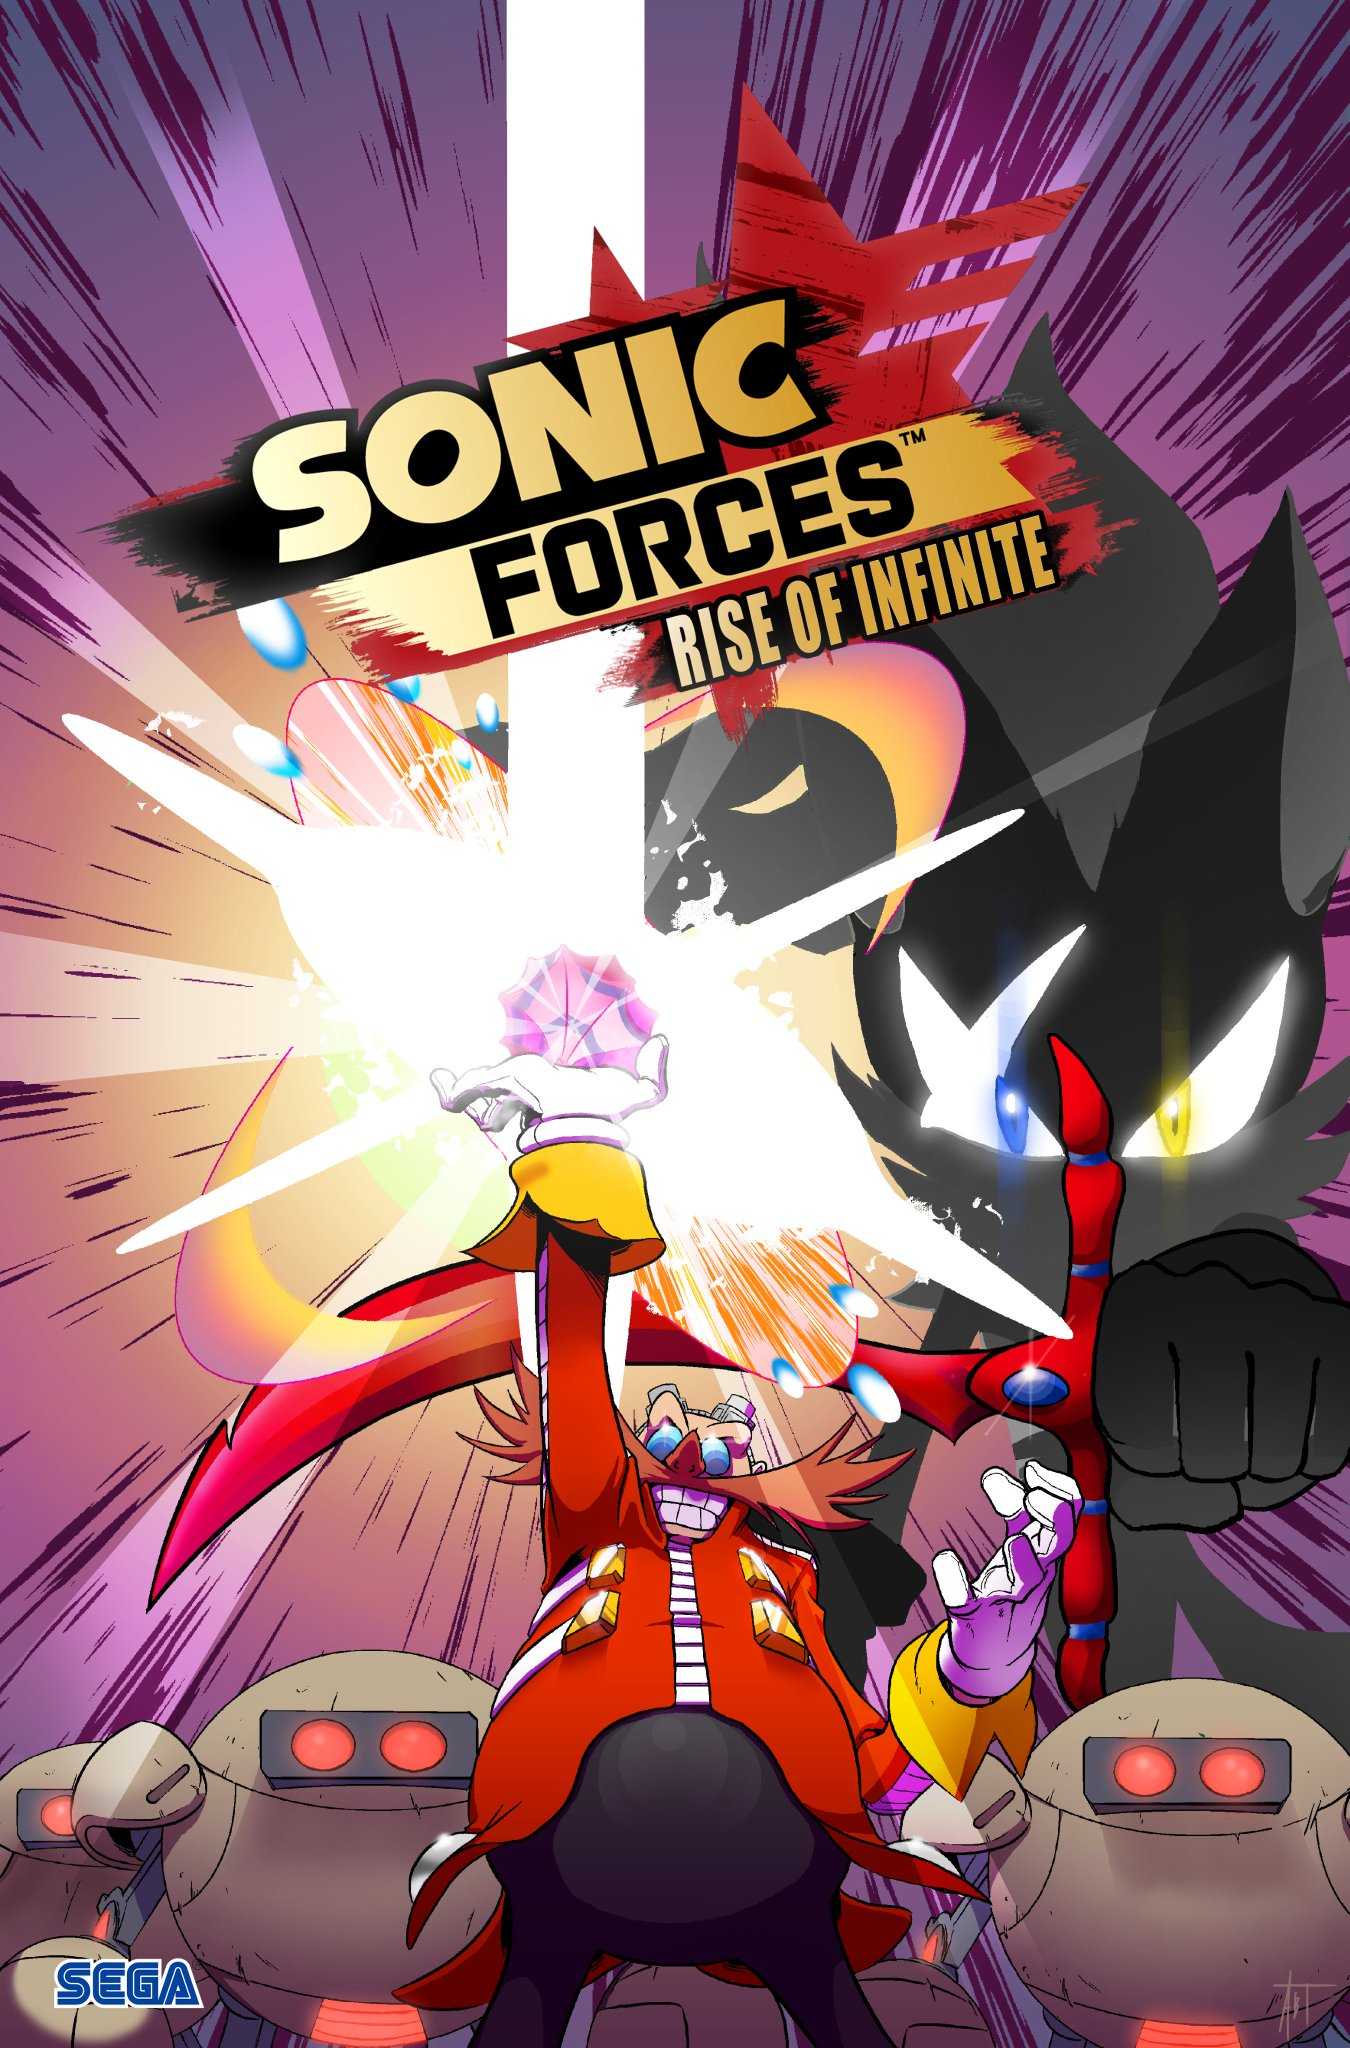 Sonic Forces is out now! Enjoy with a comic about how Eggman met a certain new villain. (1/2) https://t.co/MNHbqQIsnT